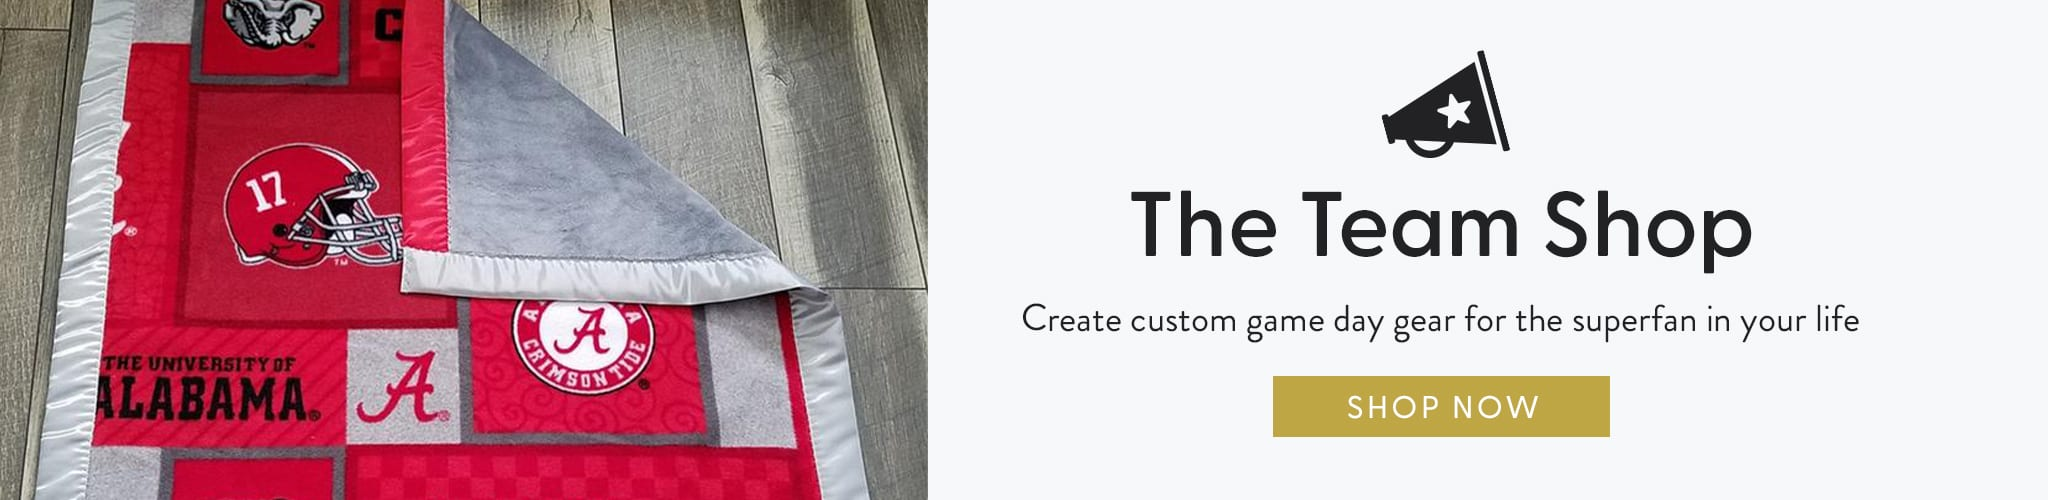 The team shop. Create custom game day for the super fan in your life.